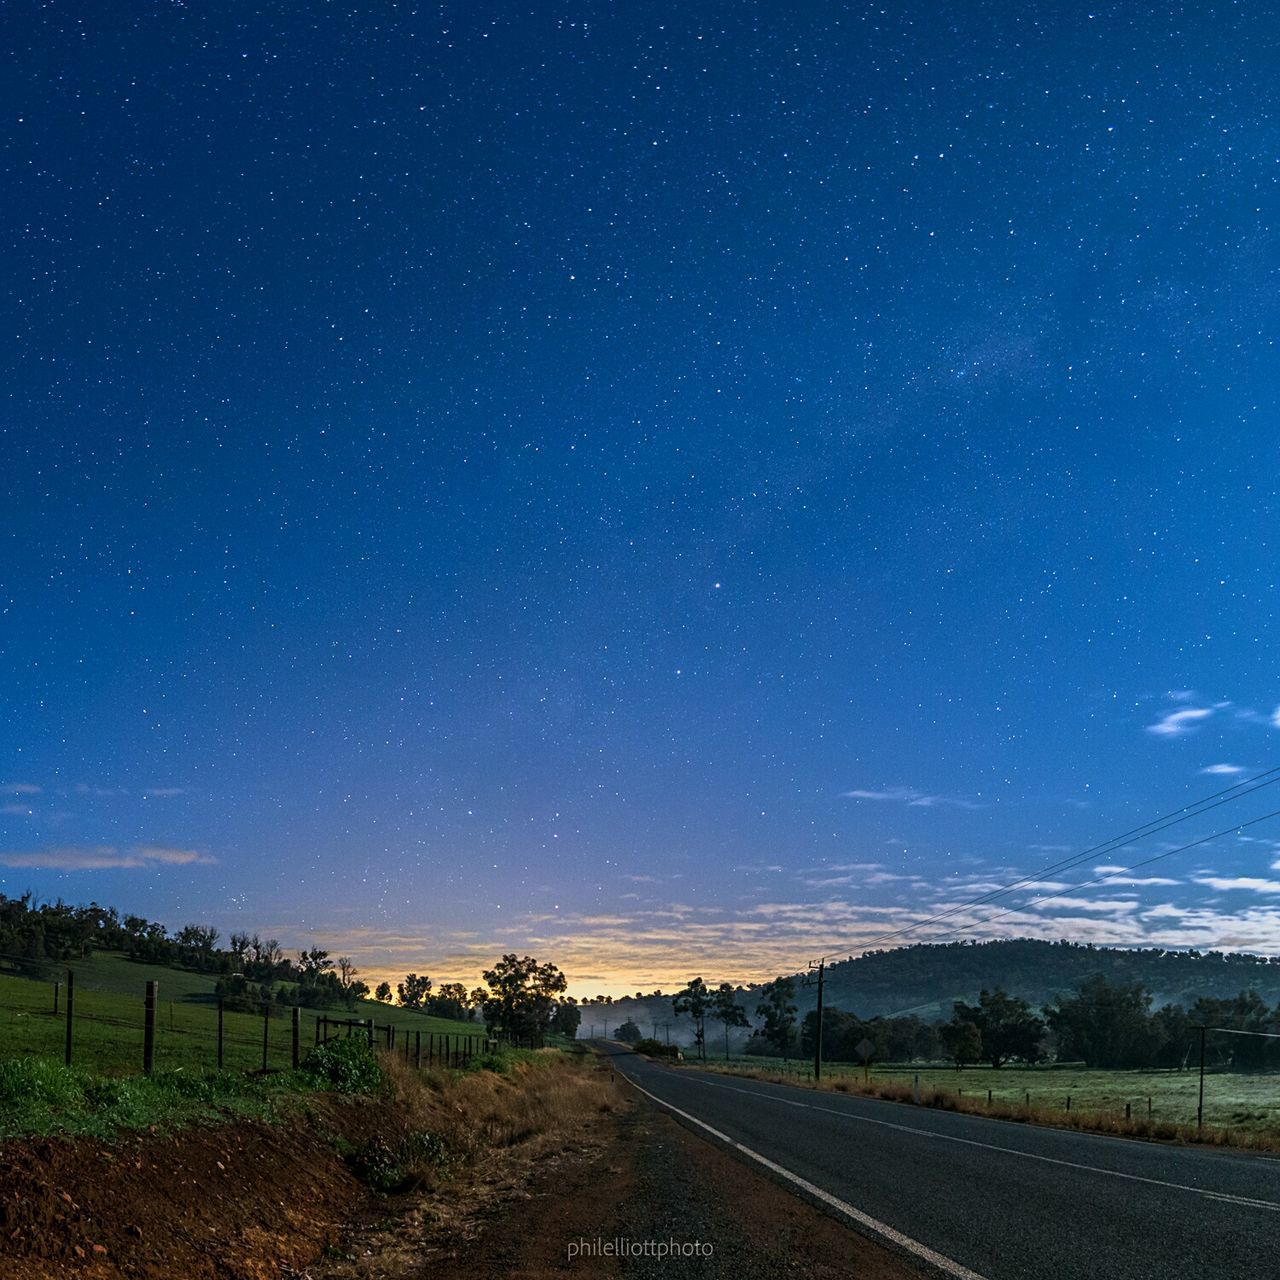 star - space, the way forward, infinity, nature, astronomy, beauty in nature, tranquil scene, scenics, night, tranquility, landscape, road, no people, outdoors, transportation, sky, blue, galaxy, space